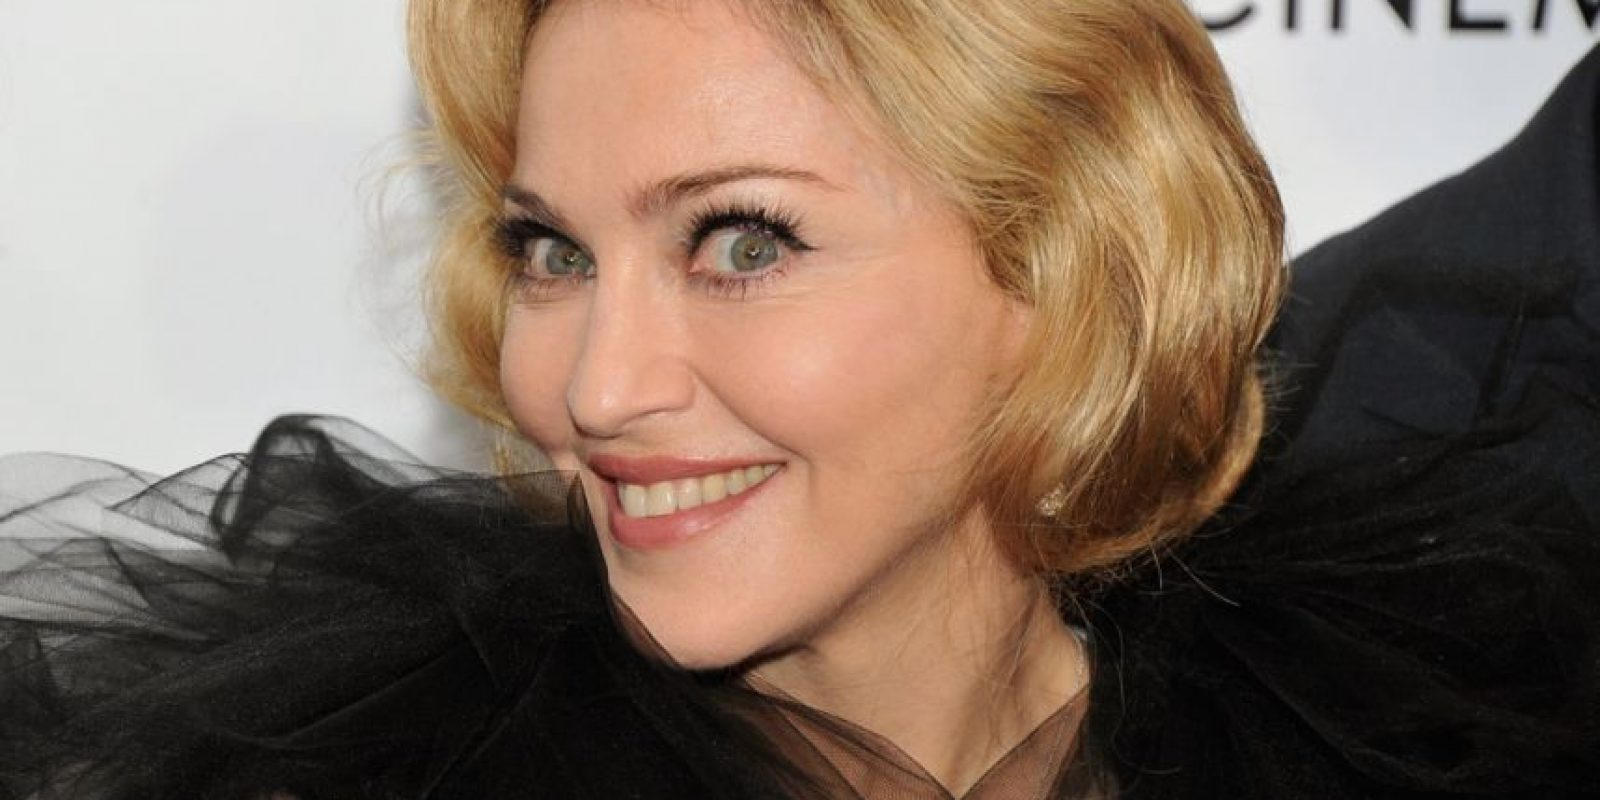 Afirman que Madonna engañó a Guy Ritchie con Álex Rodríguez Foto: Getty Images